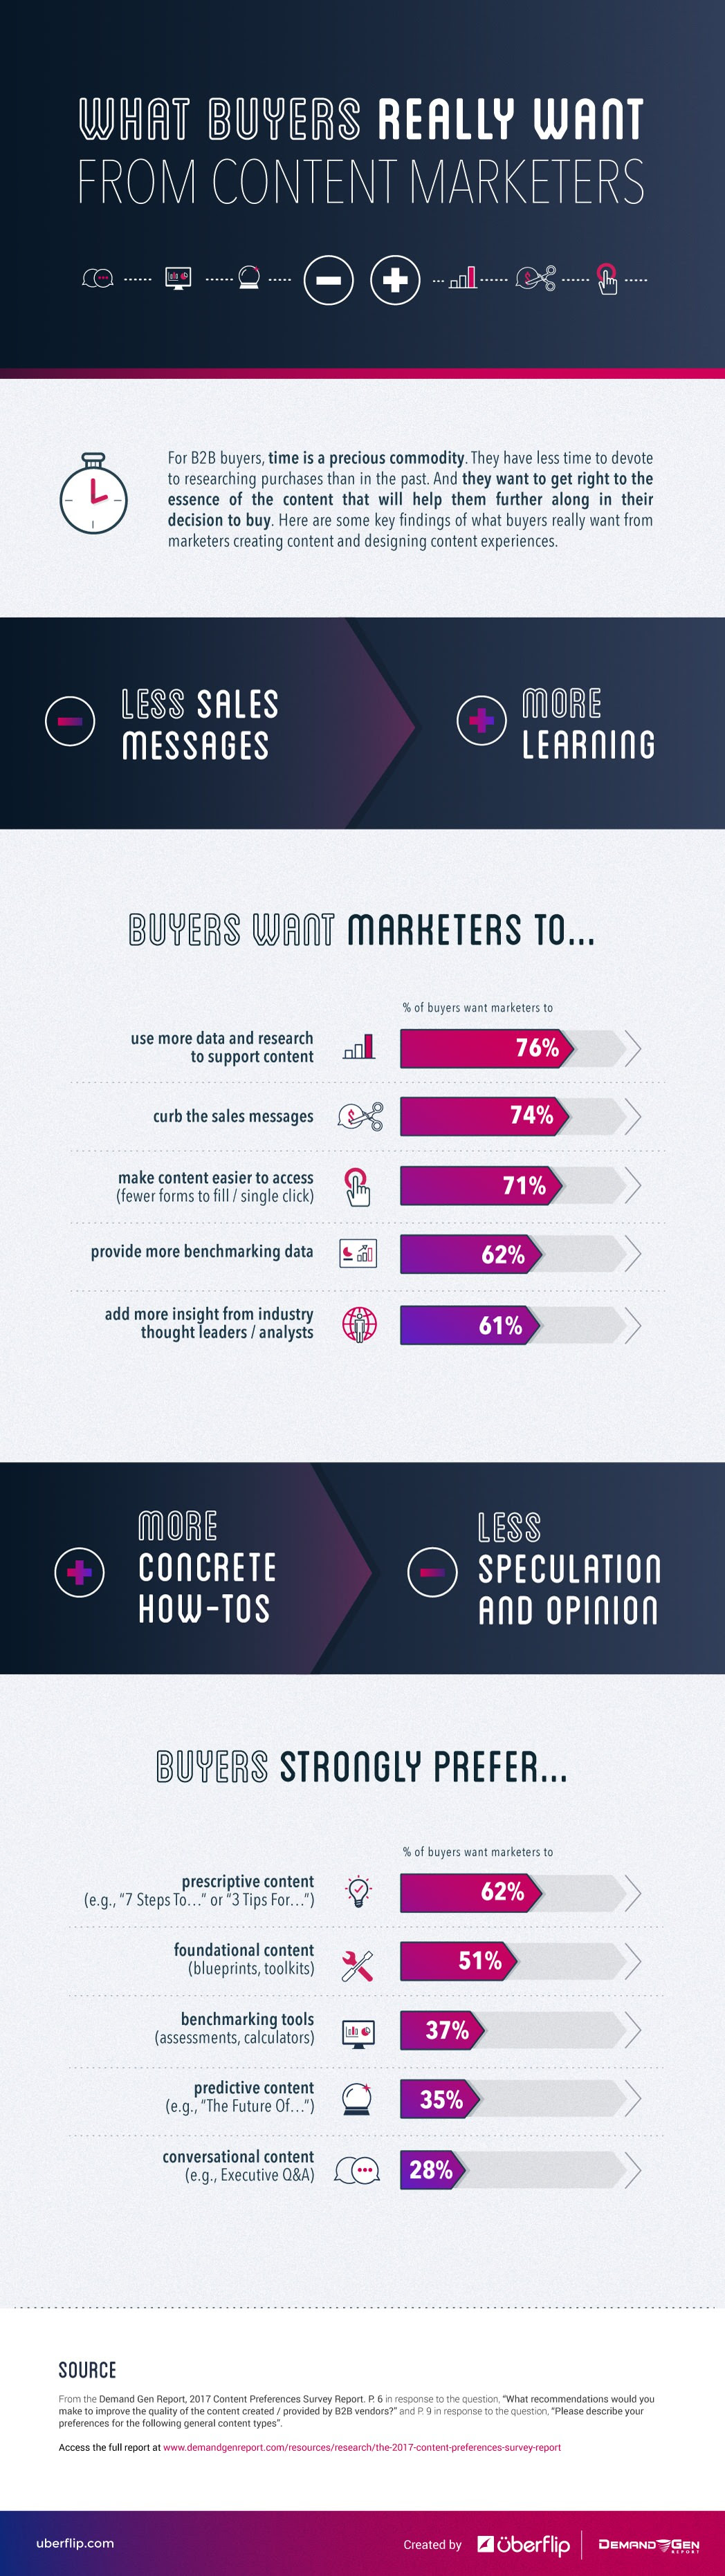 What Buyers Really Want From Content Marketers